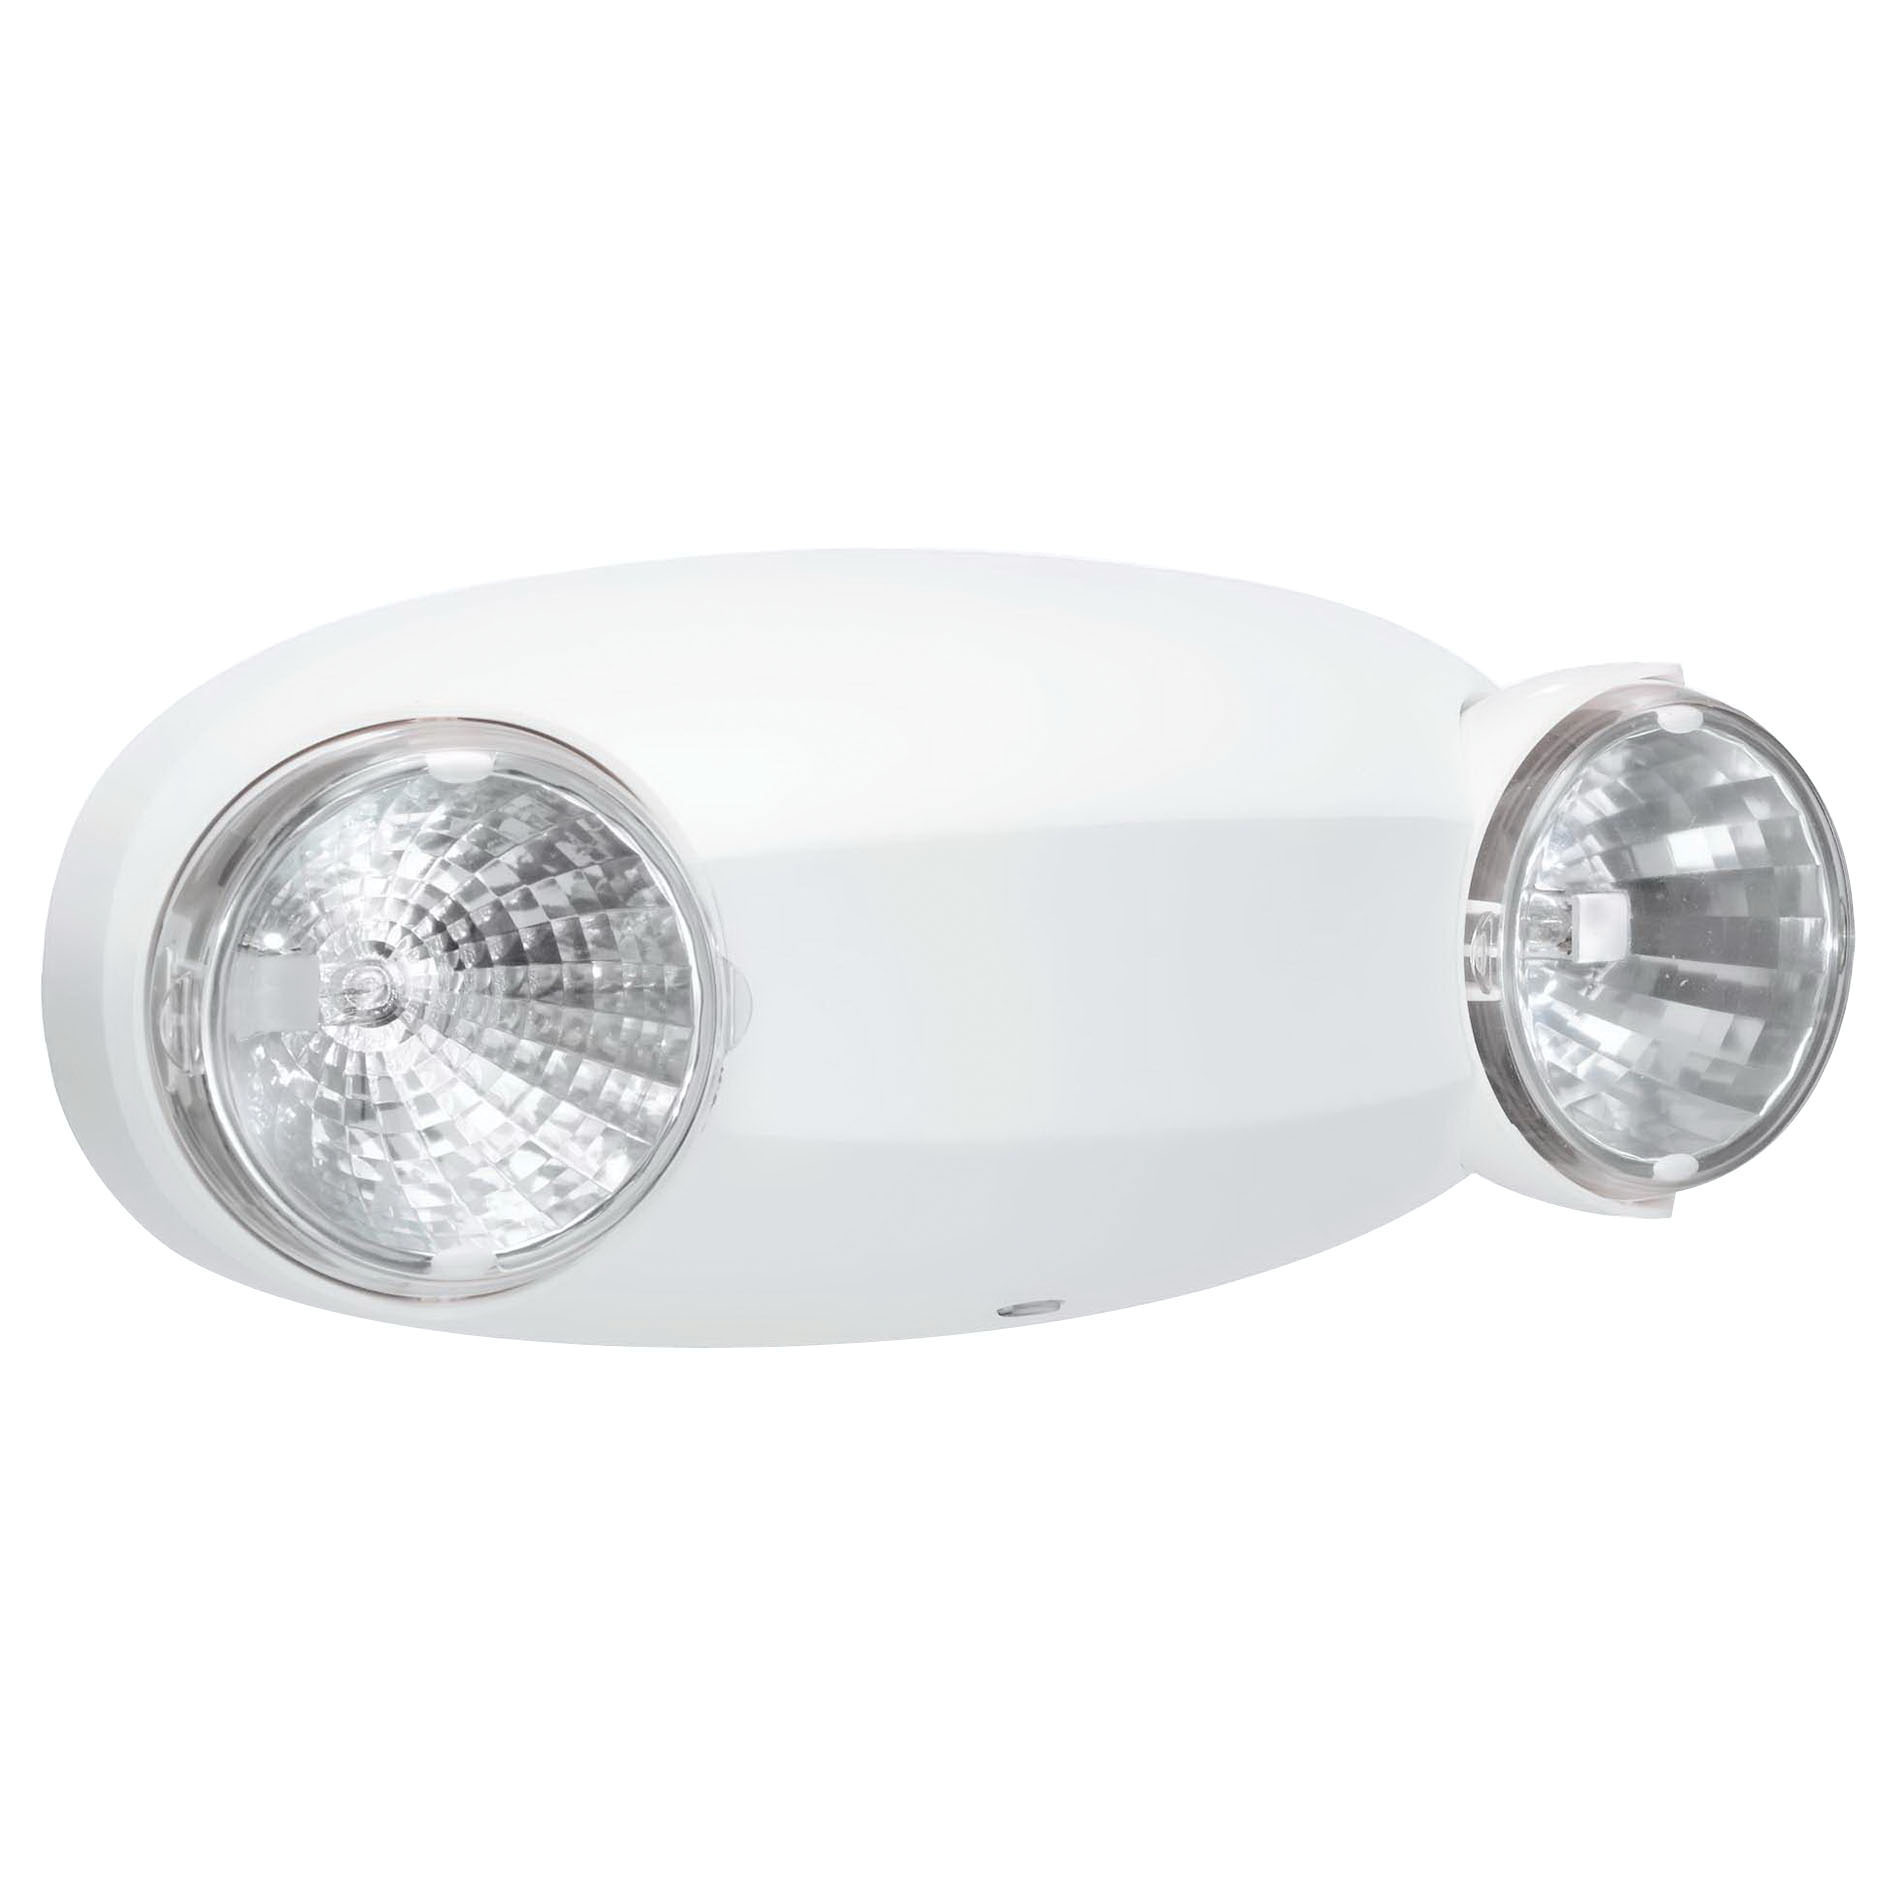 Emergency-Light-Fixtures